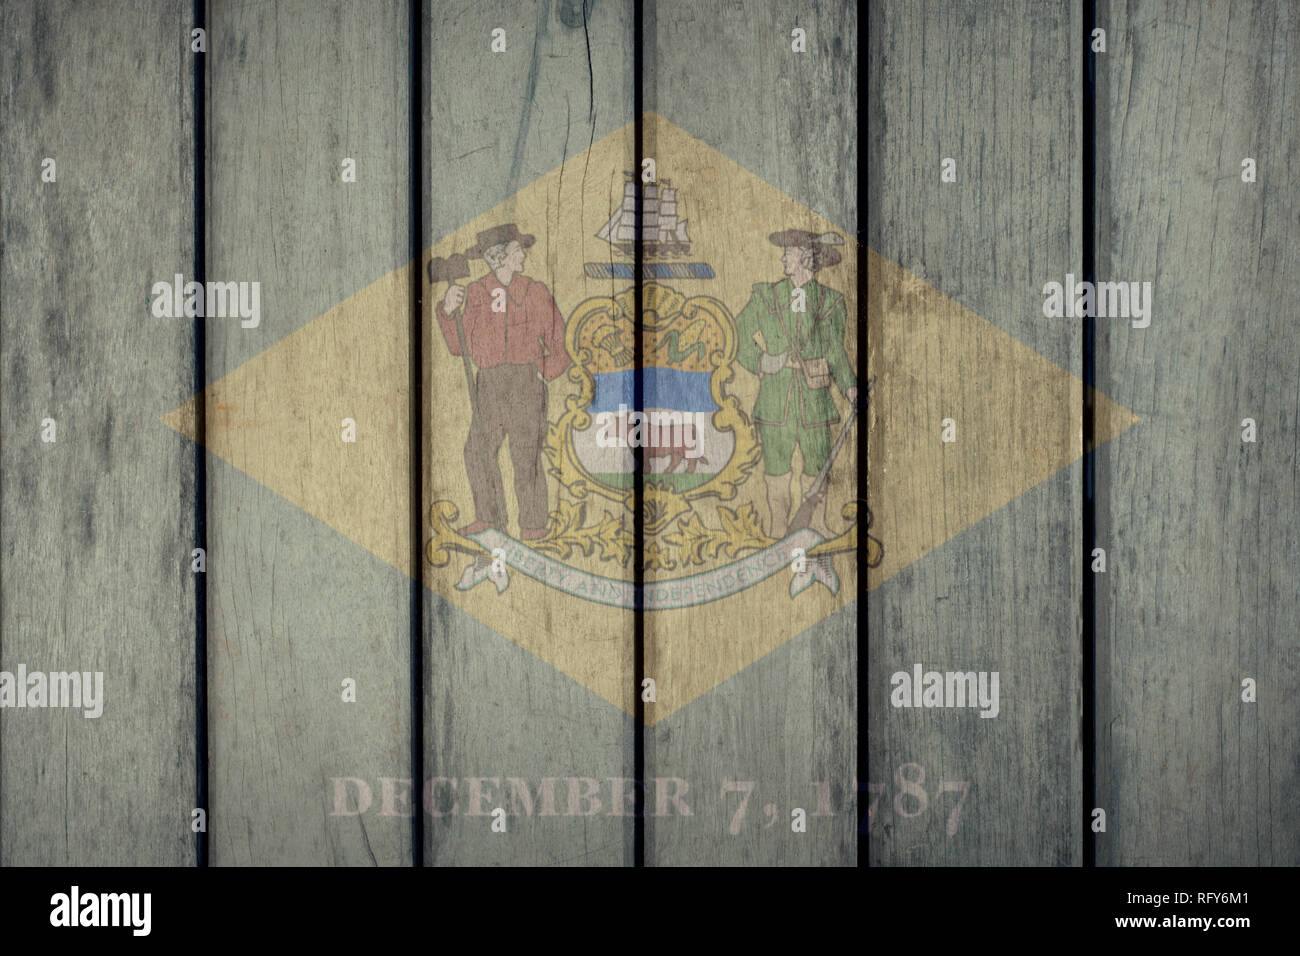 USA Politics News Concept: US State Delaware Flag Wooden Fence Stock